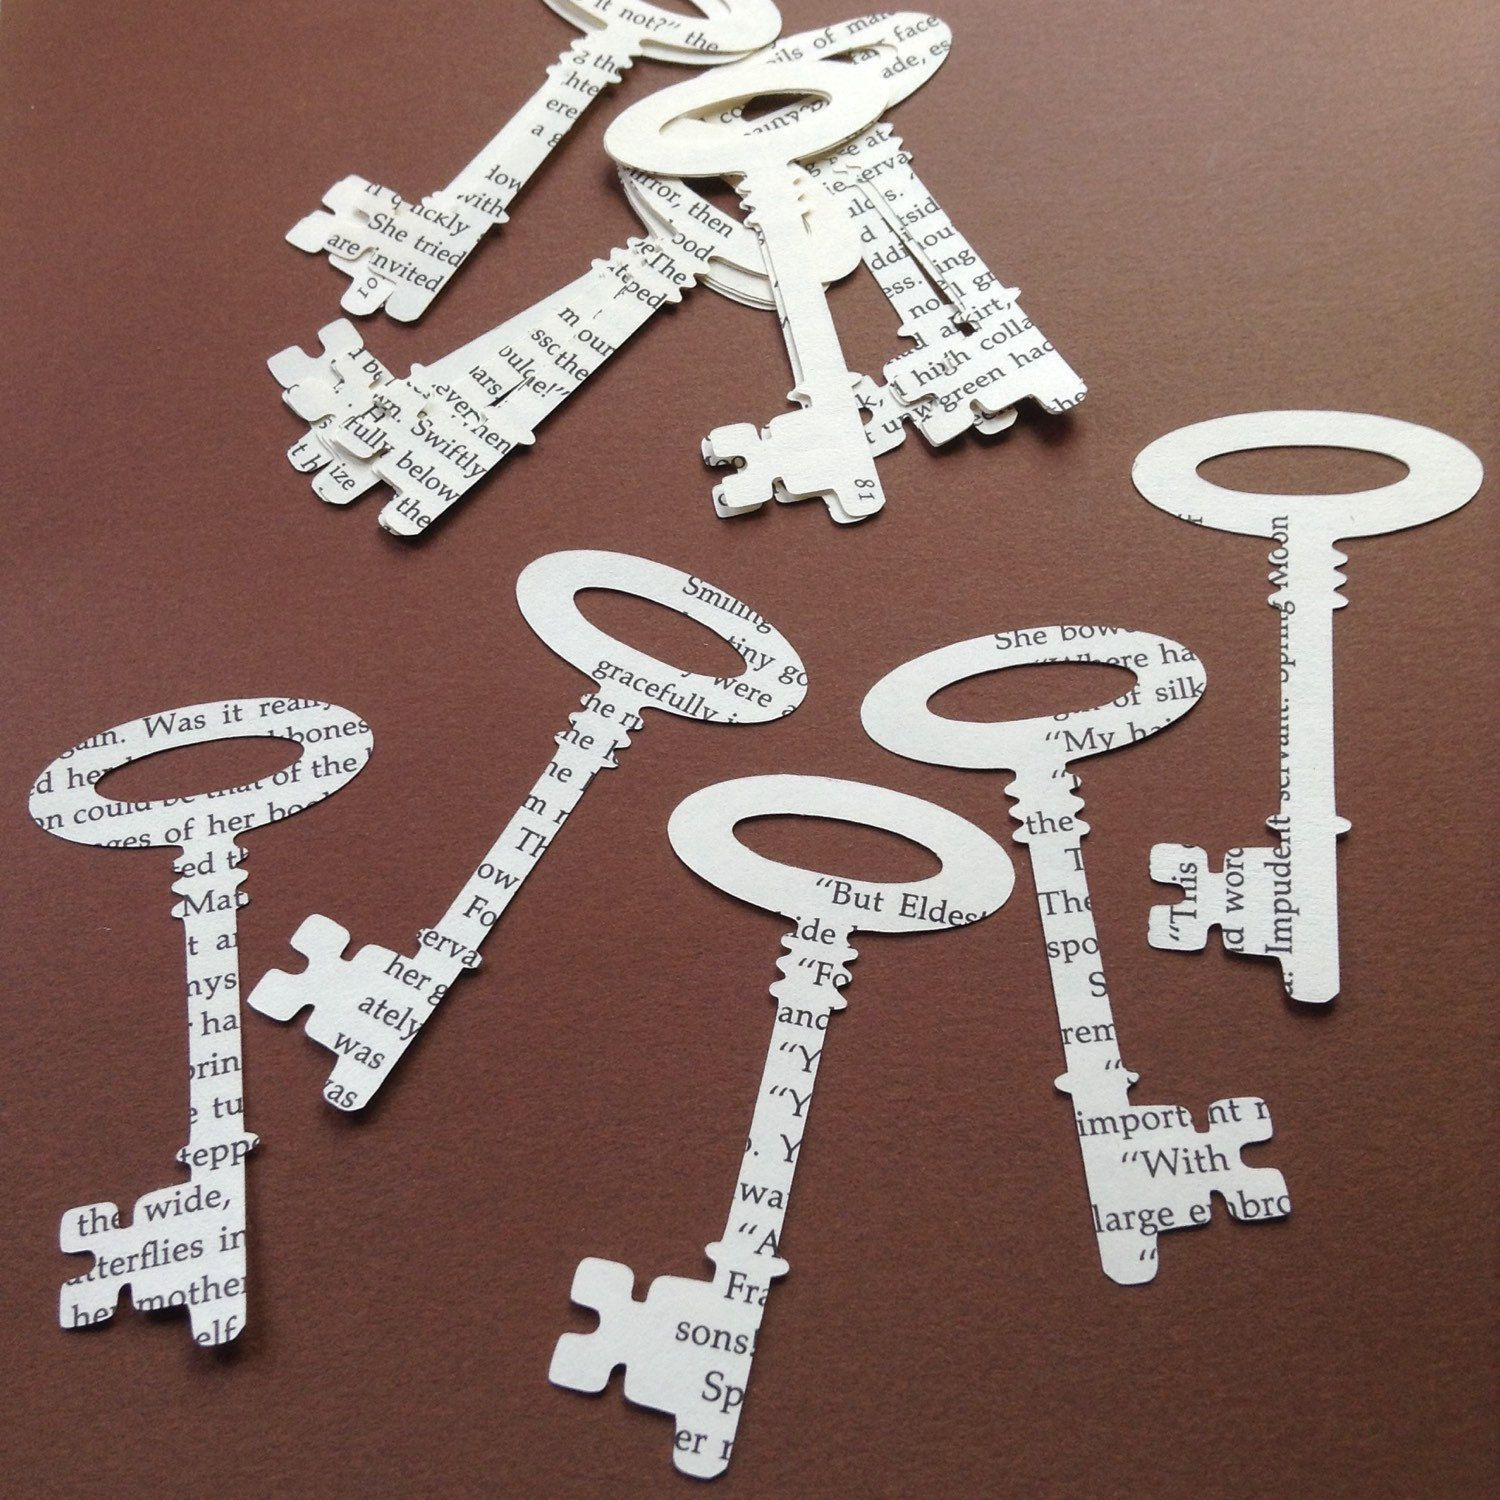 Skeleton Keys Confetti Book Page Scrapbook Embellishment Table Scatter  Scrapbook Confetti Recycled Wedding Decoration Sherlock Holmes